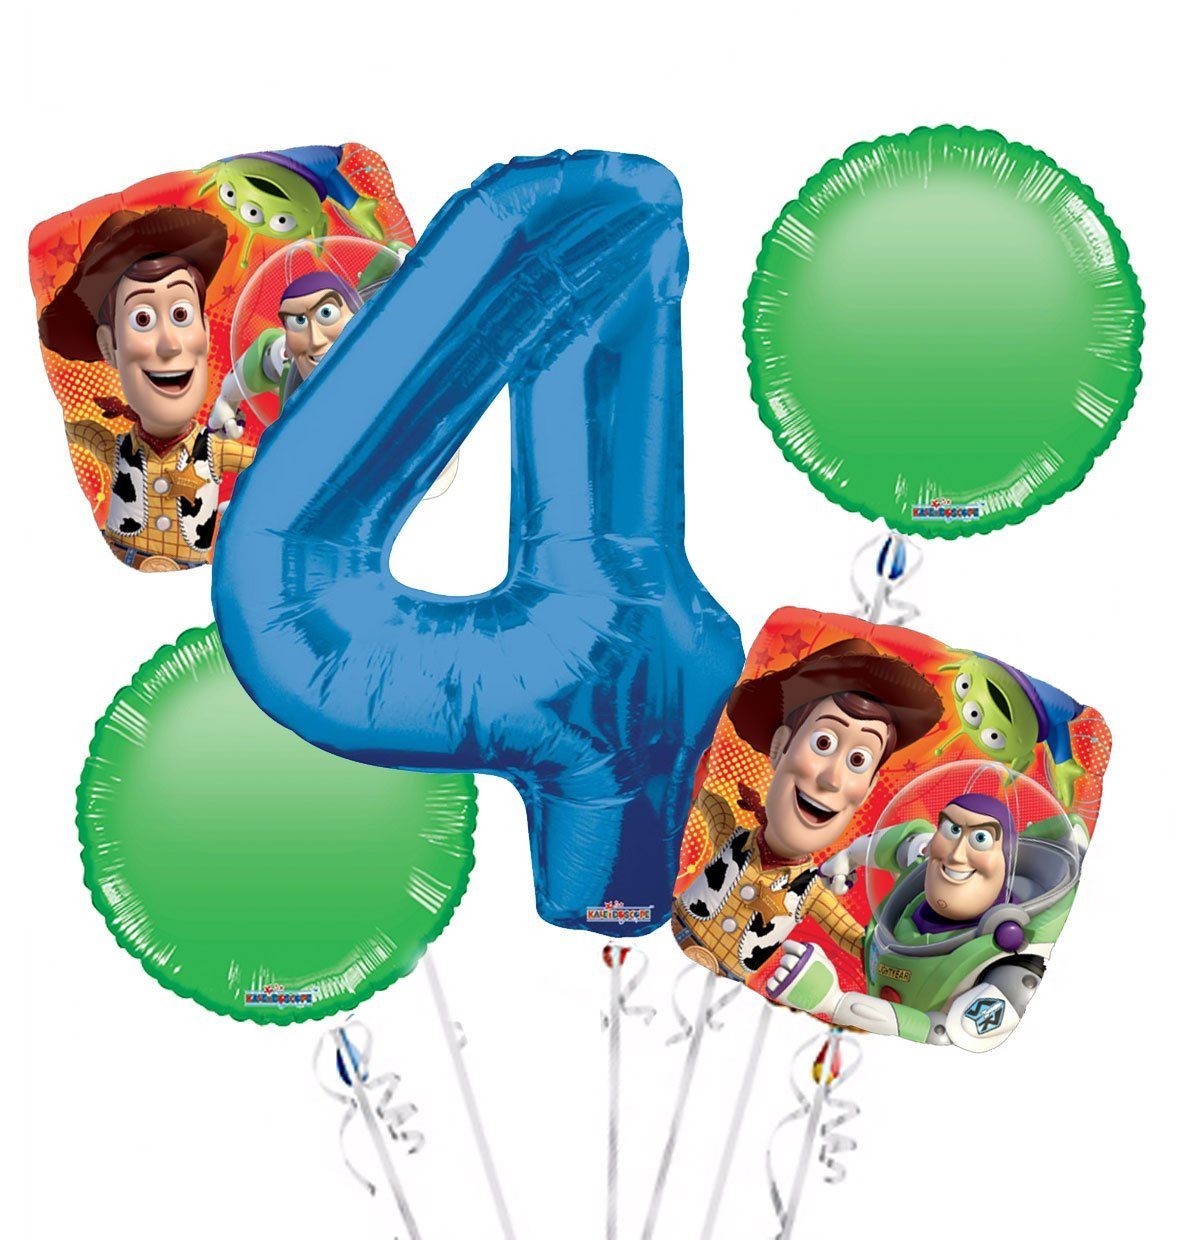 Toy Story Balloon Bouquet 4th Birthday 5 pcs - Party Supplies, 1 Giant Number 4 Balloon, 34in By Viva Party